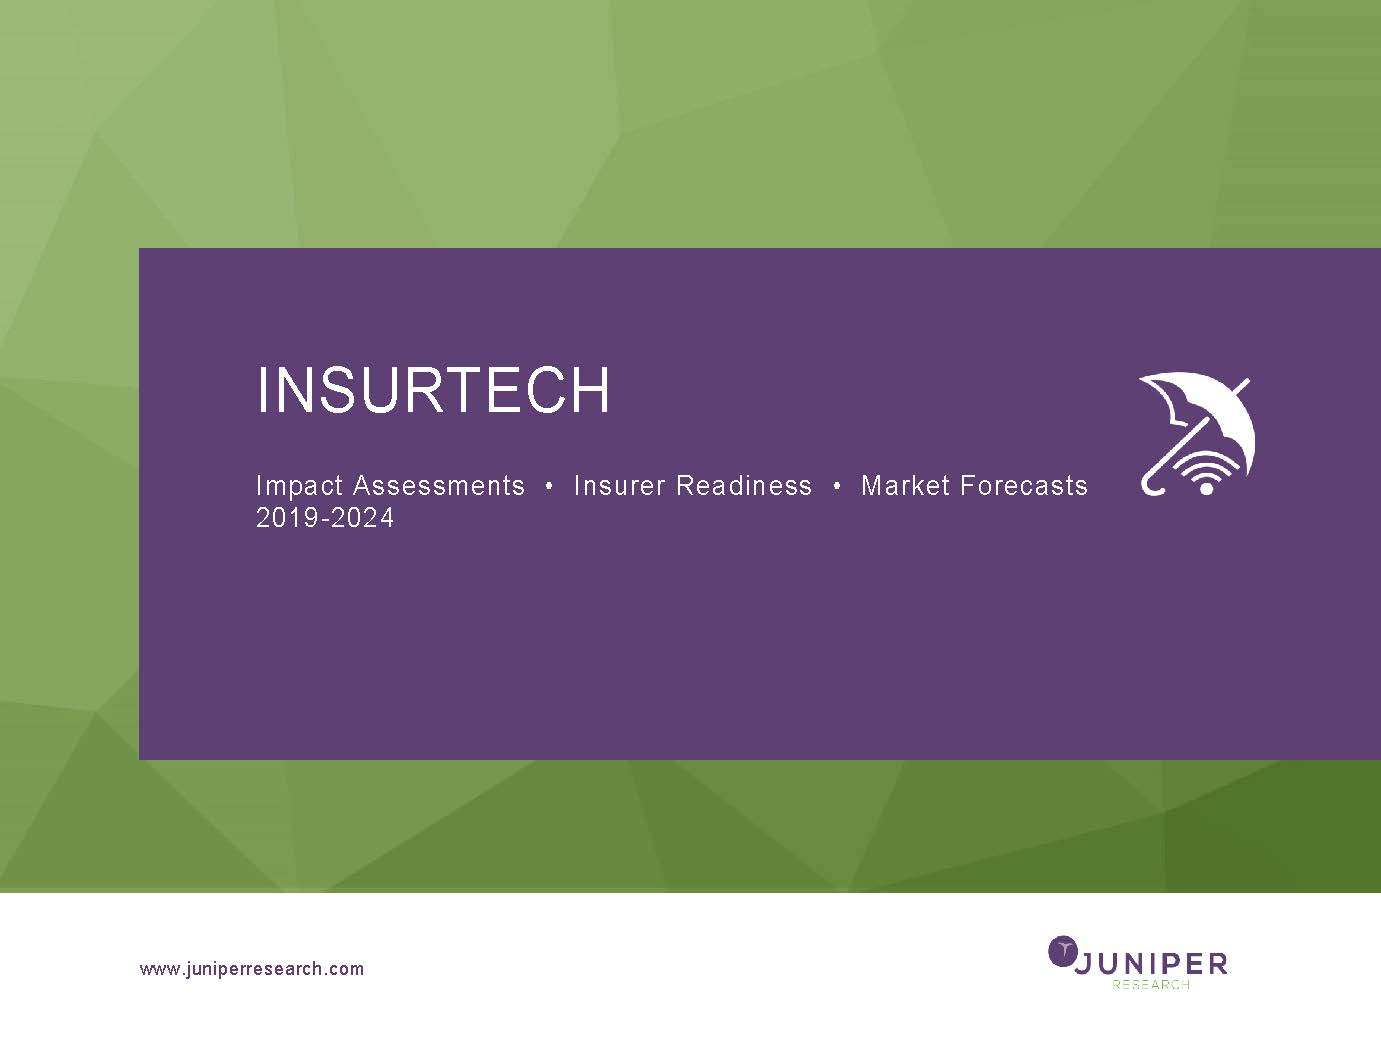 Insurtech: Impact Assessments, Insurer Readiness & Market Forecasts 2019-2024